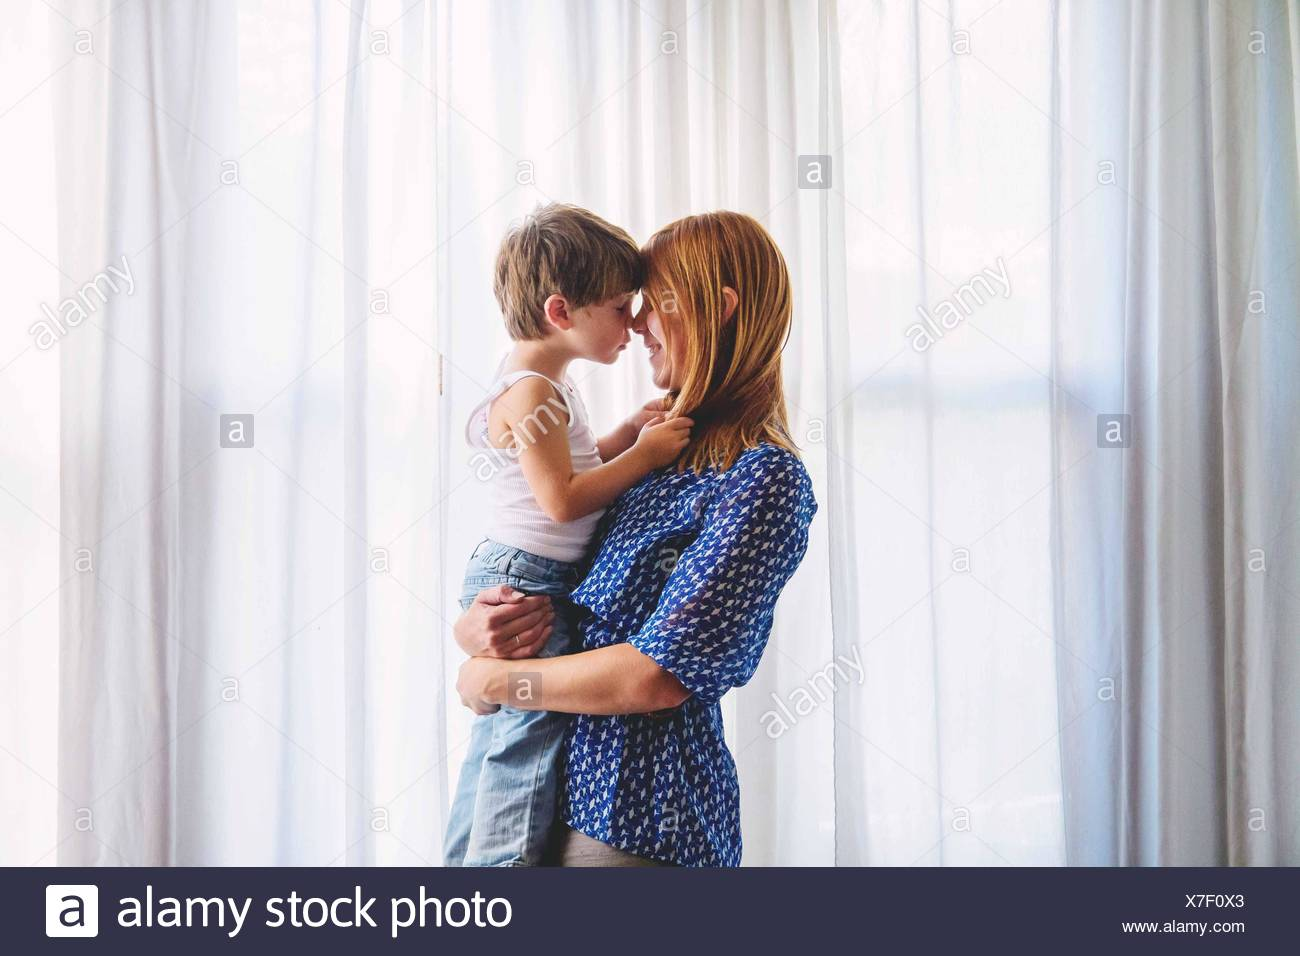 Mom holding young boy (2-3) and touching noses - Stock Image